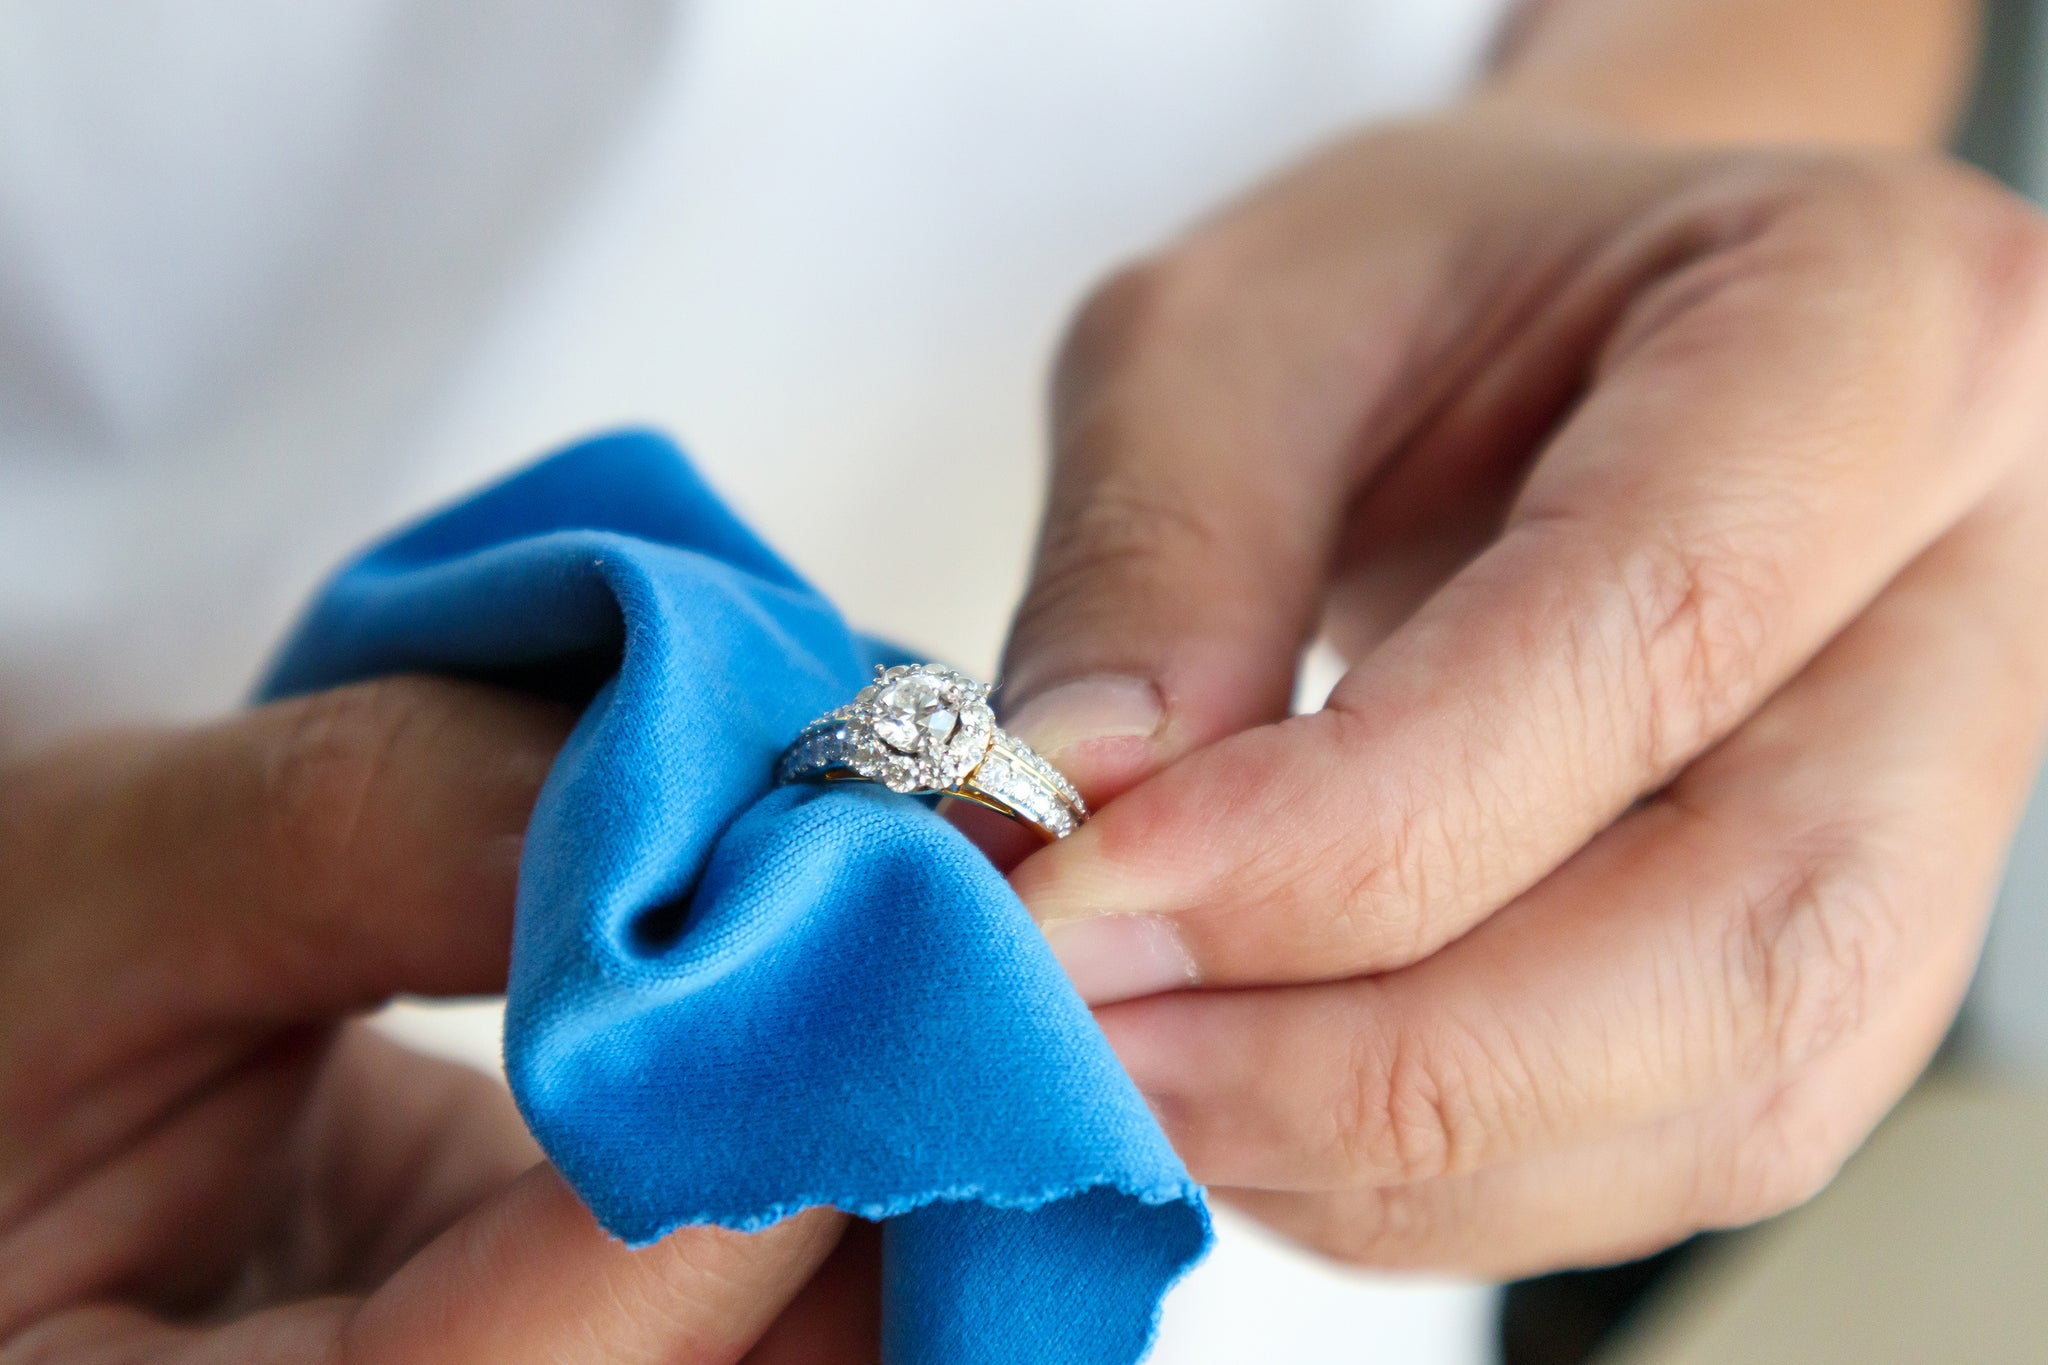 Cleaning your rings and jewellery